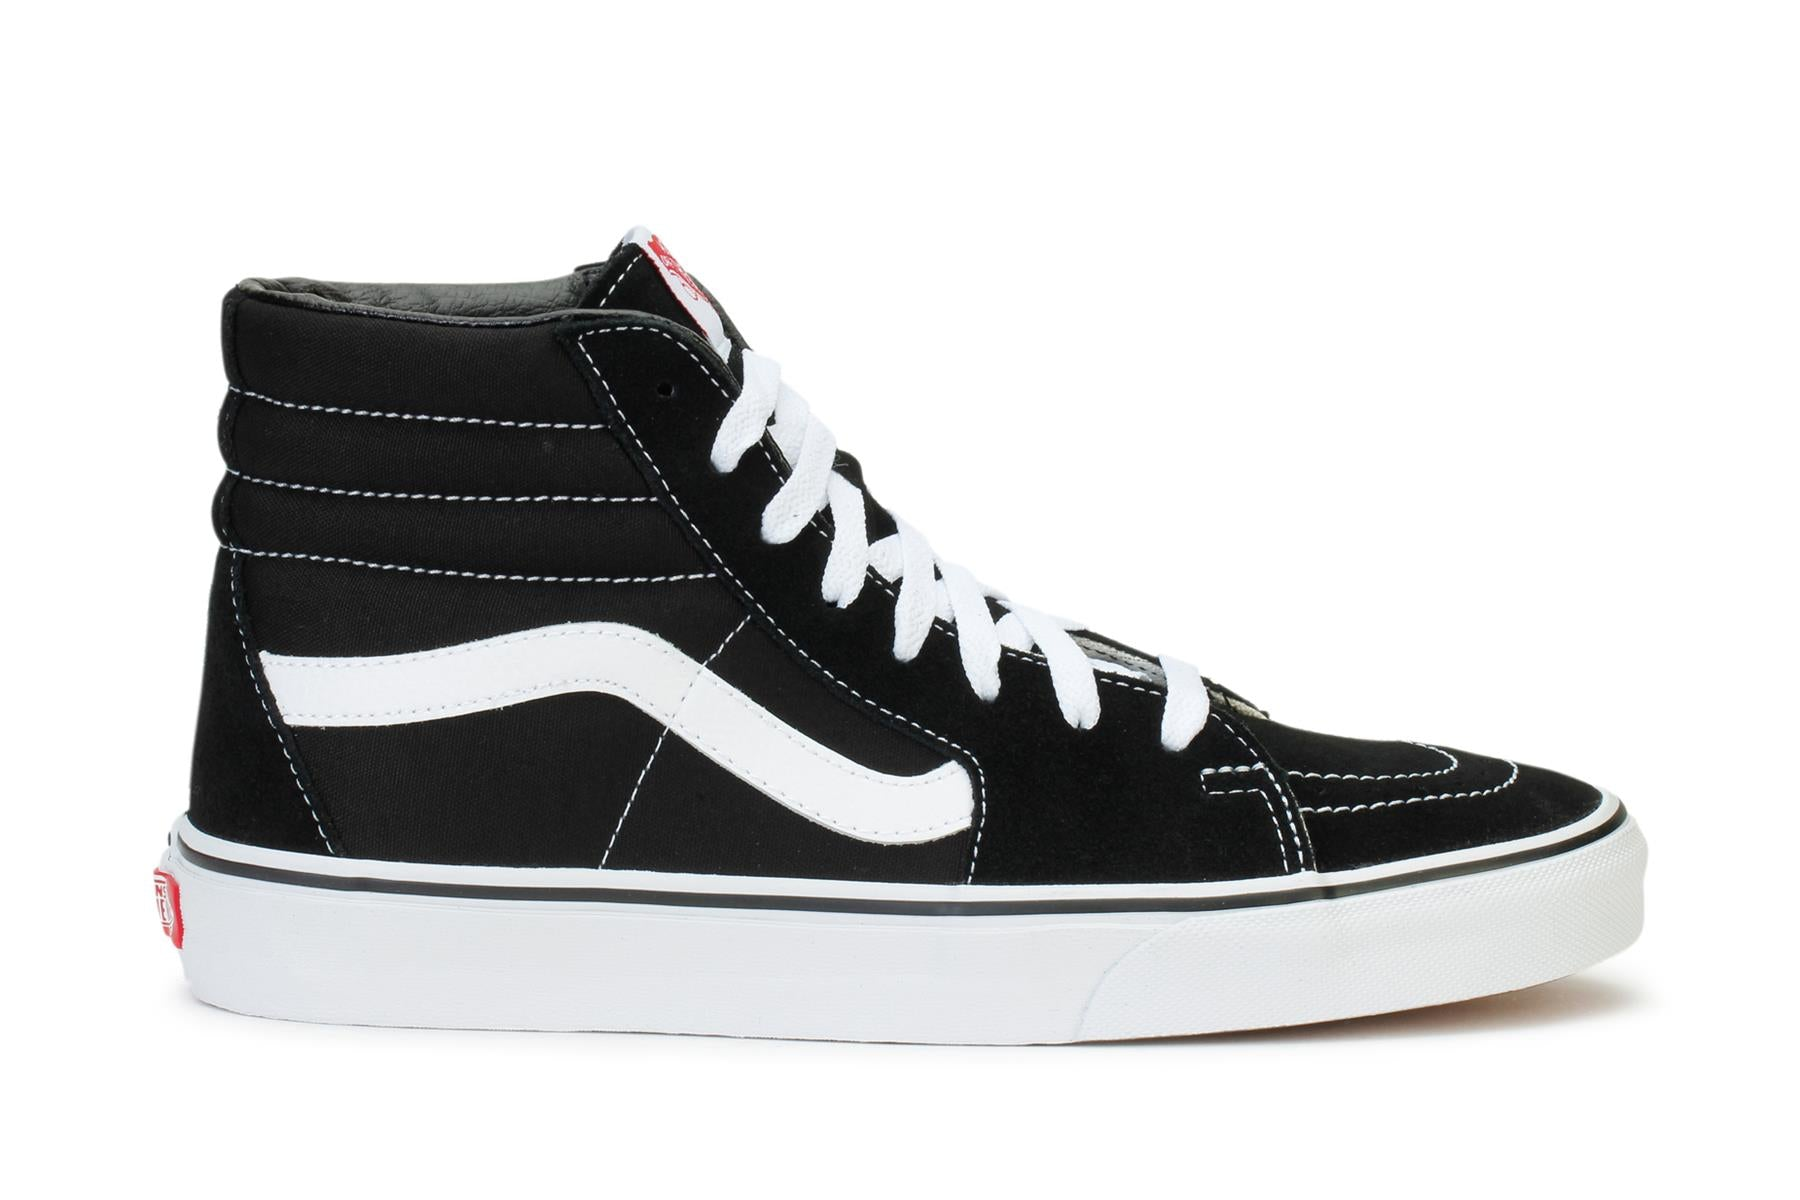 vans-mens-sk8-hi-top-sneakers-black-black-white-vn000d5ib8c-main